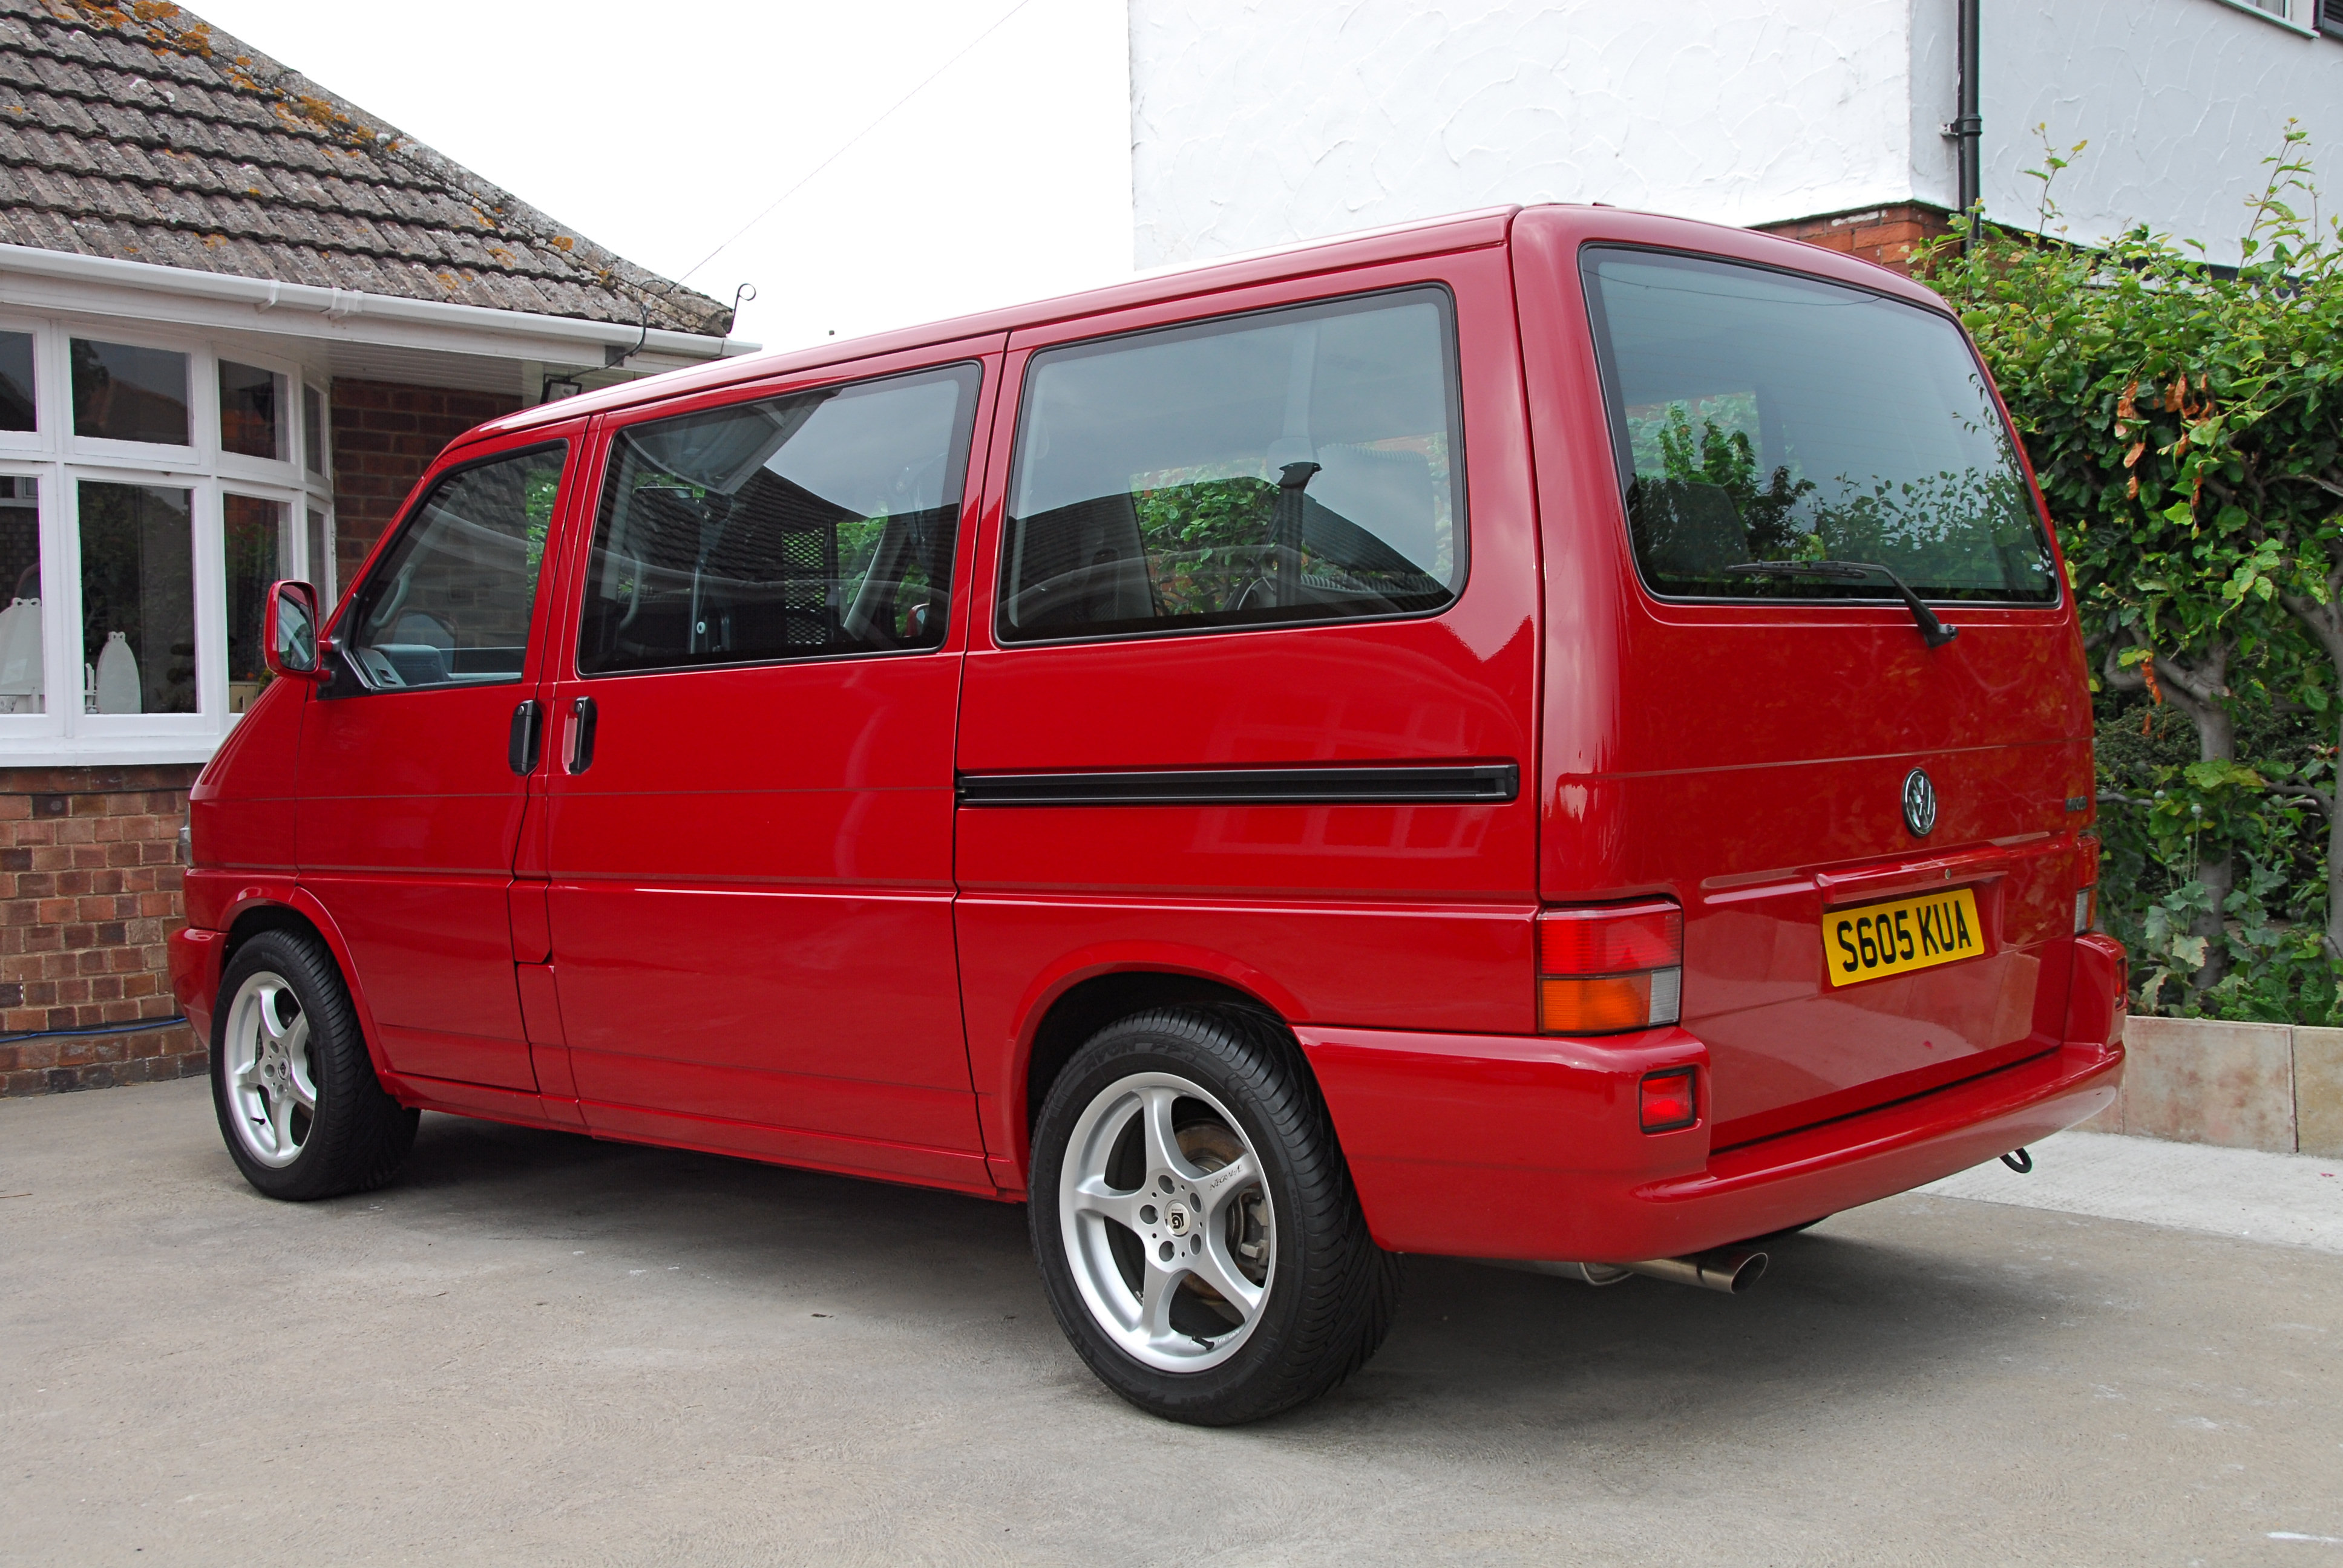 vw t4 caravelle technical details history photos on. Black Bedroom Furniture Sets. Home Design Ideas